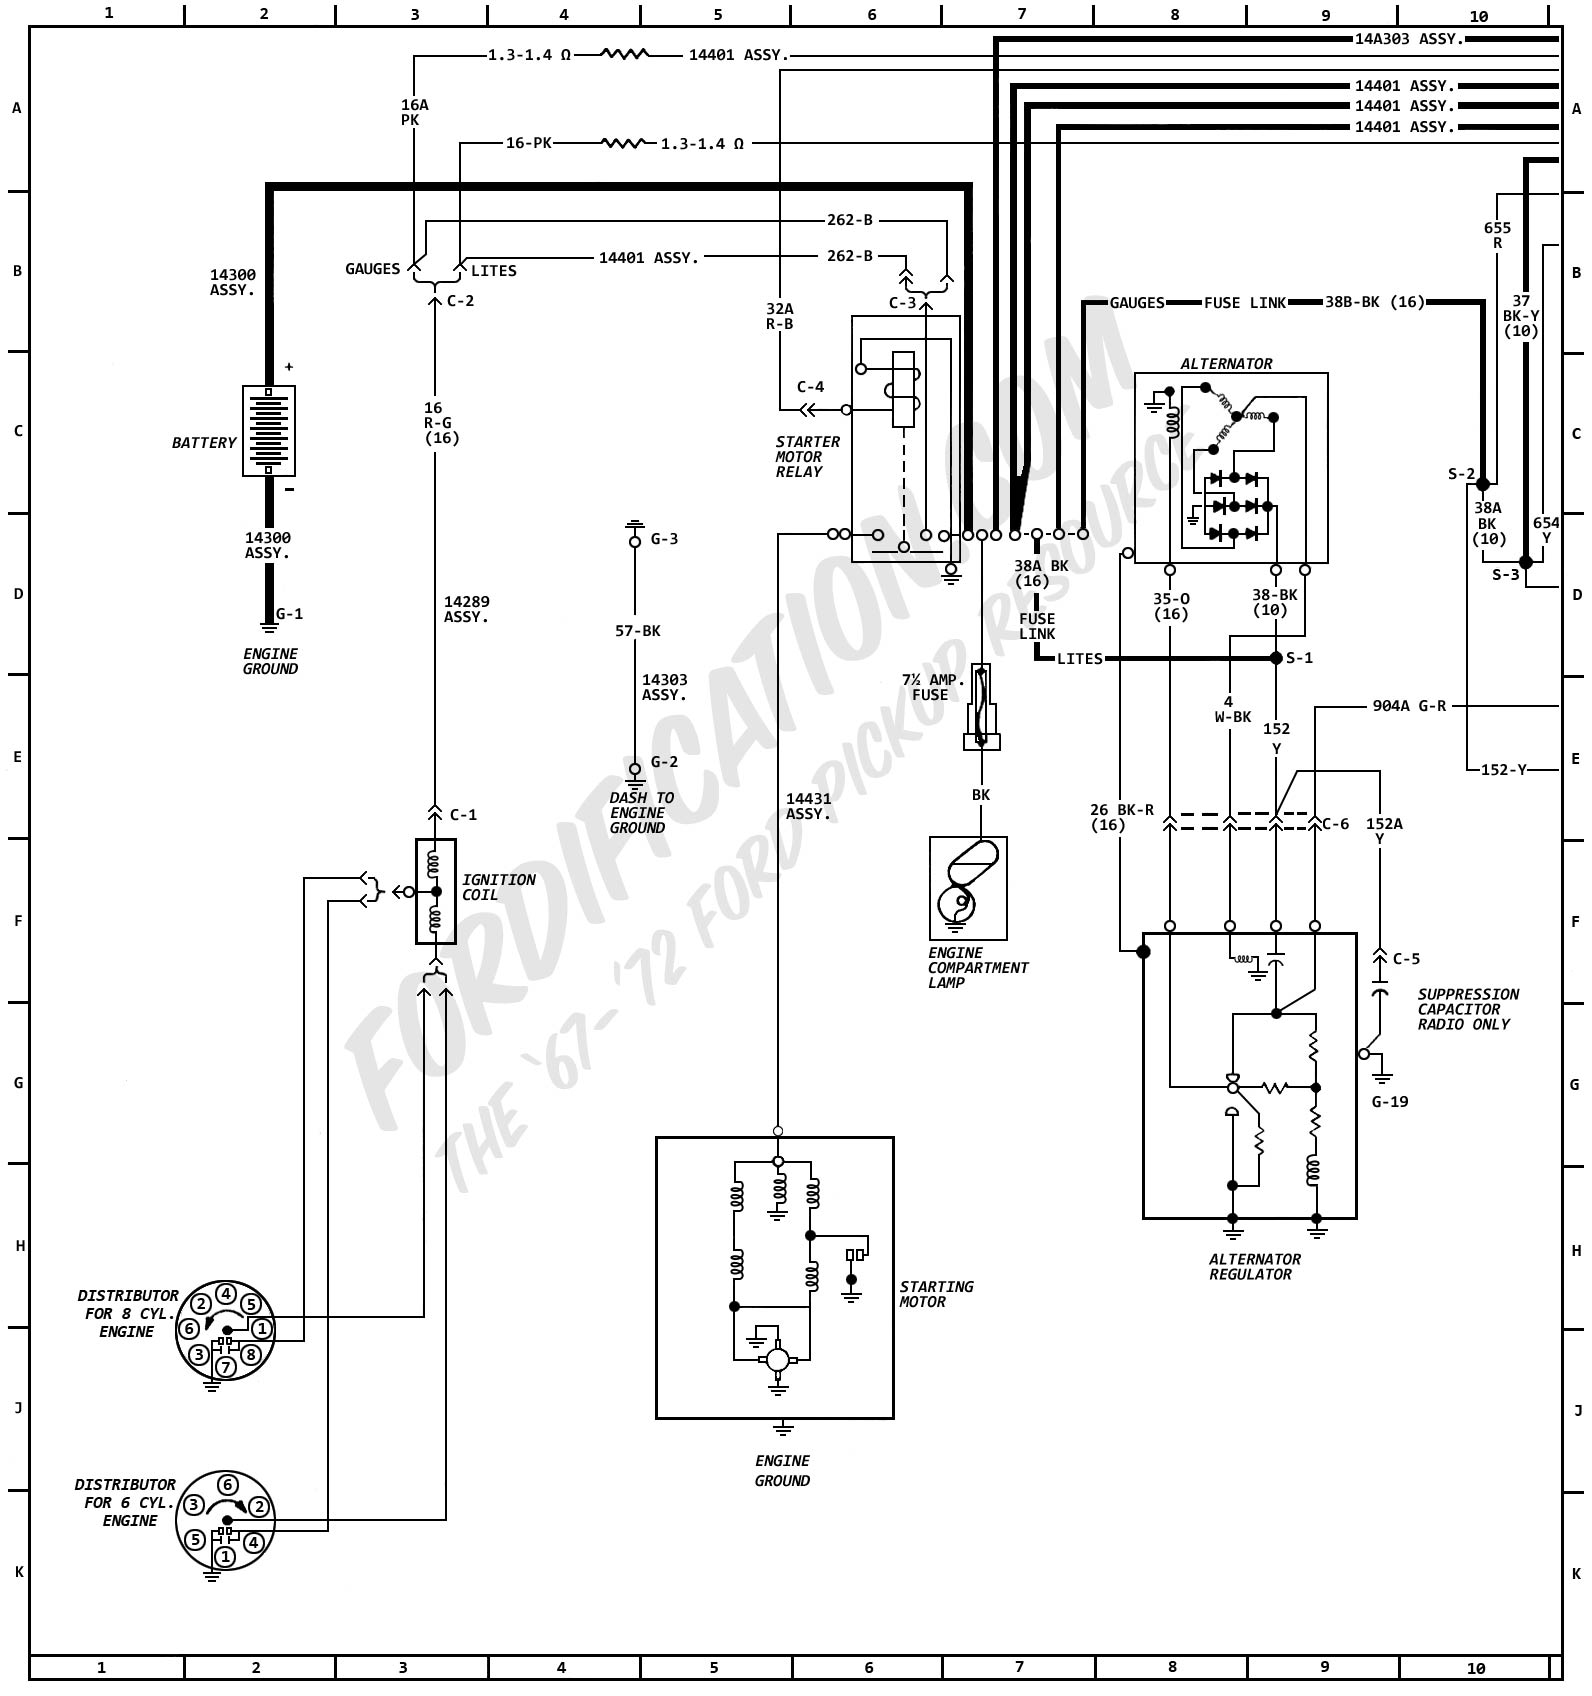 1972MasterWiring_01 1972 ford truck wiring diagrams fordification com ford truck wiring schematics at alyssarenee.co